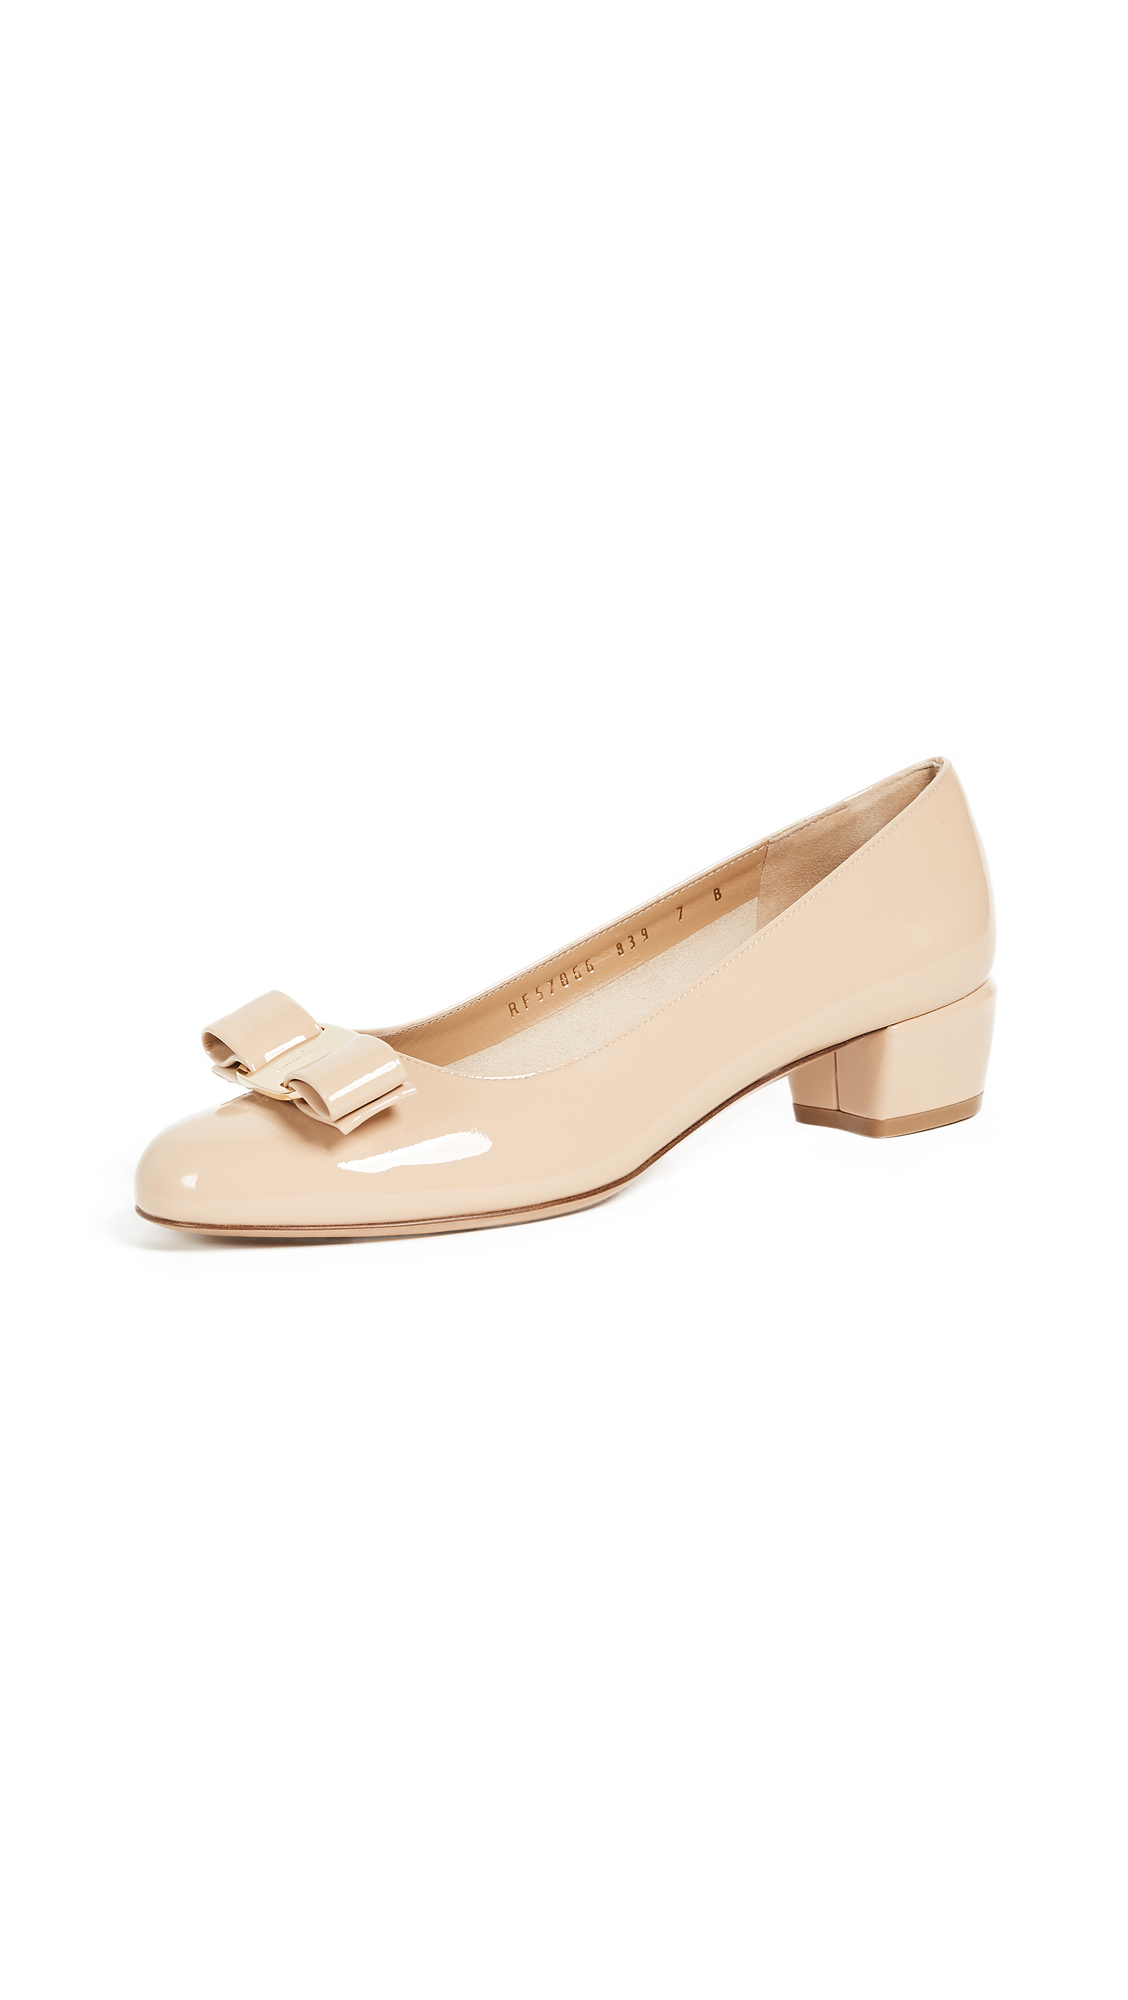 Salvatore Ferragamo Vara Low Heel Pumps - New Bisque